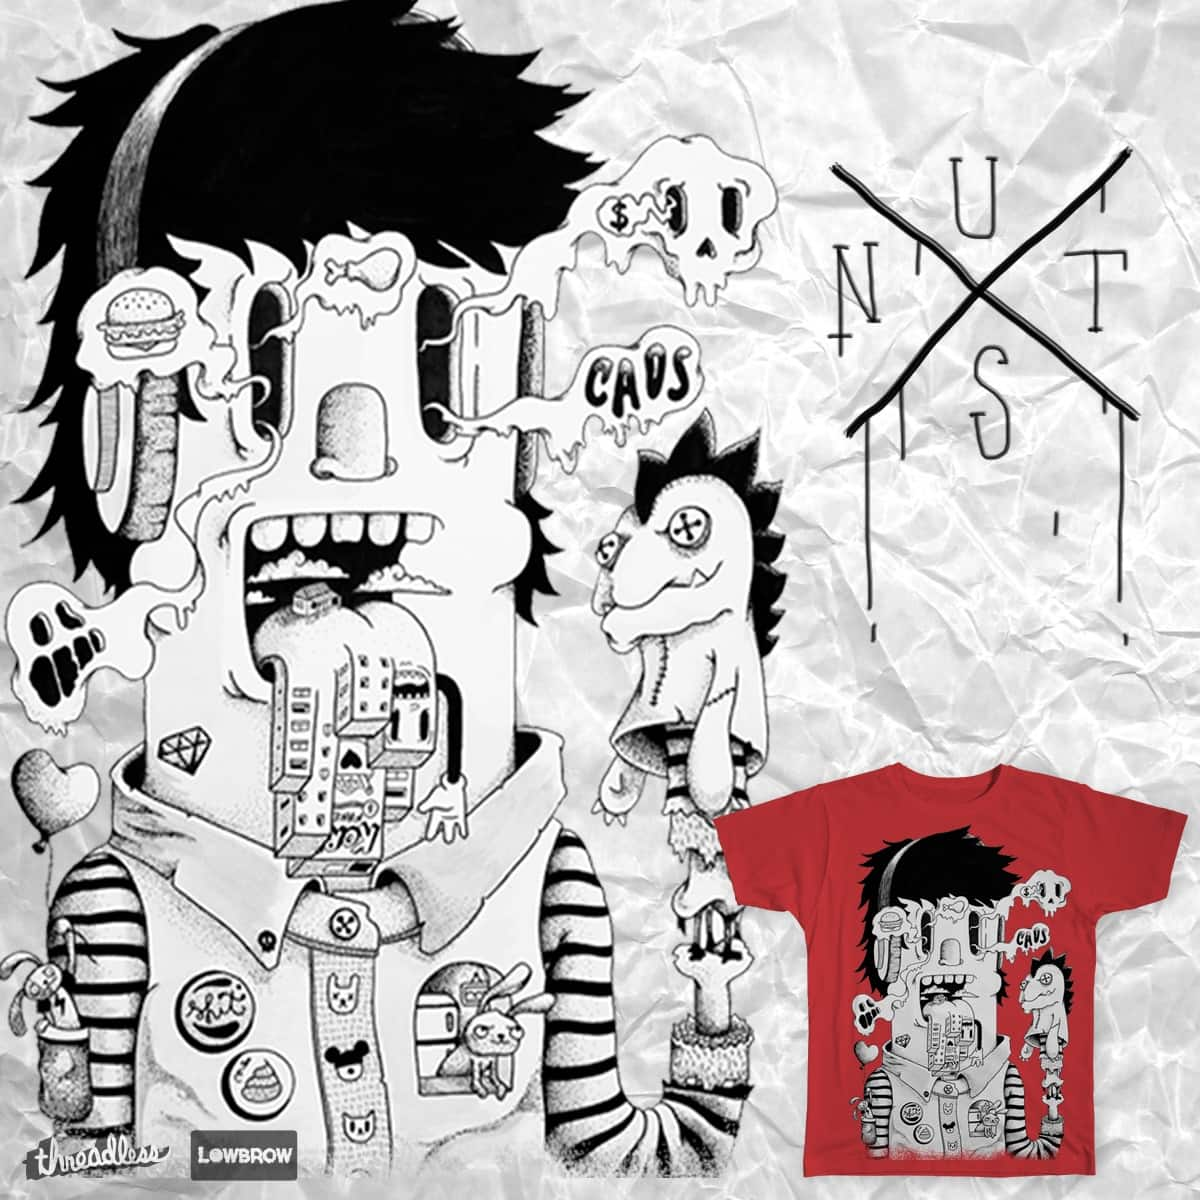 CAOS by p.nutz on Threadless